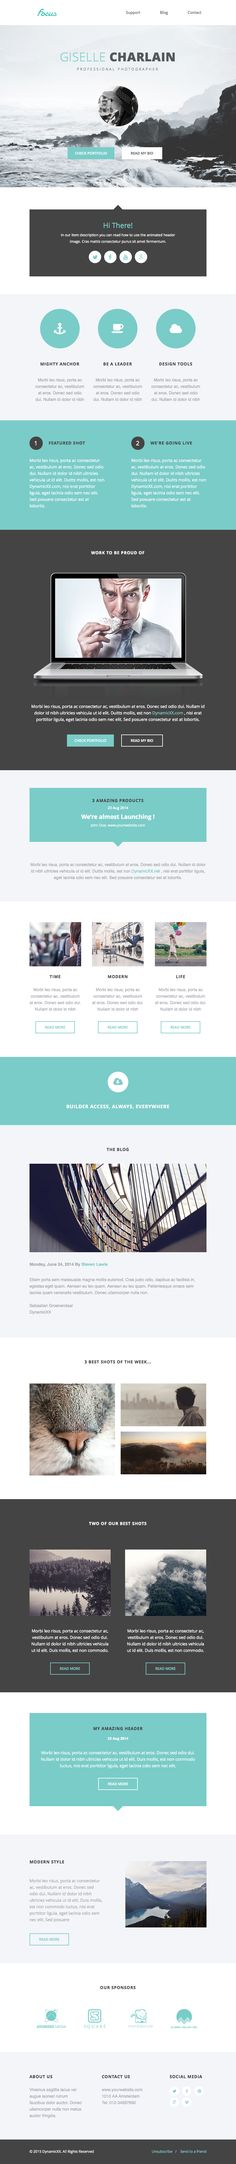 Clean & Modern Web Design                                                                                                                                                                                 More